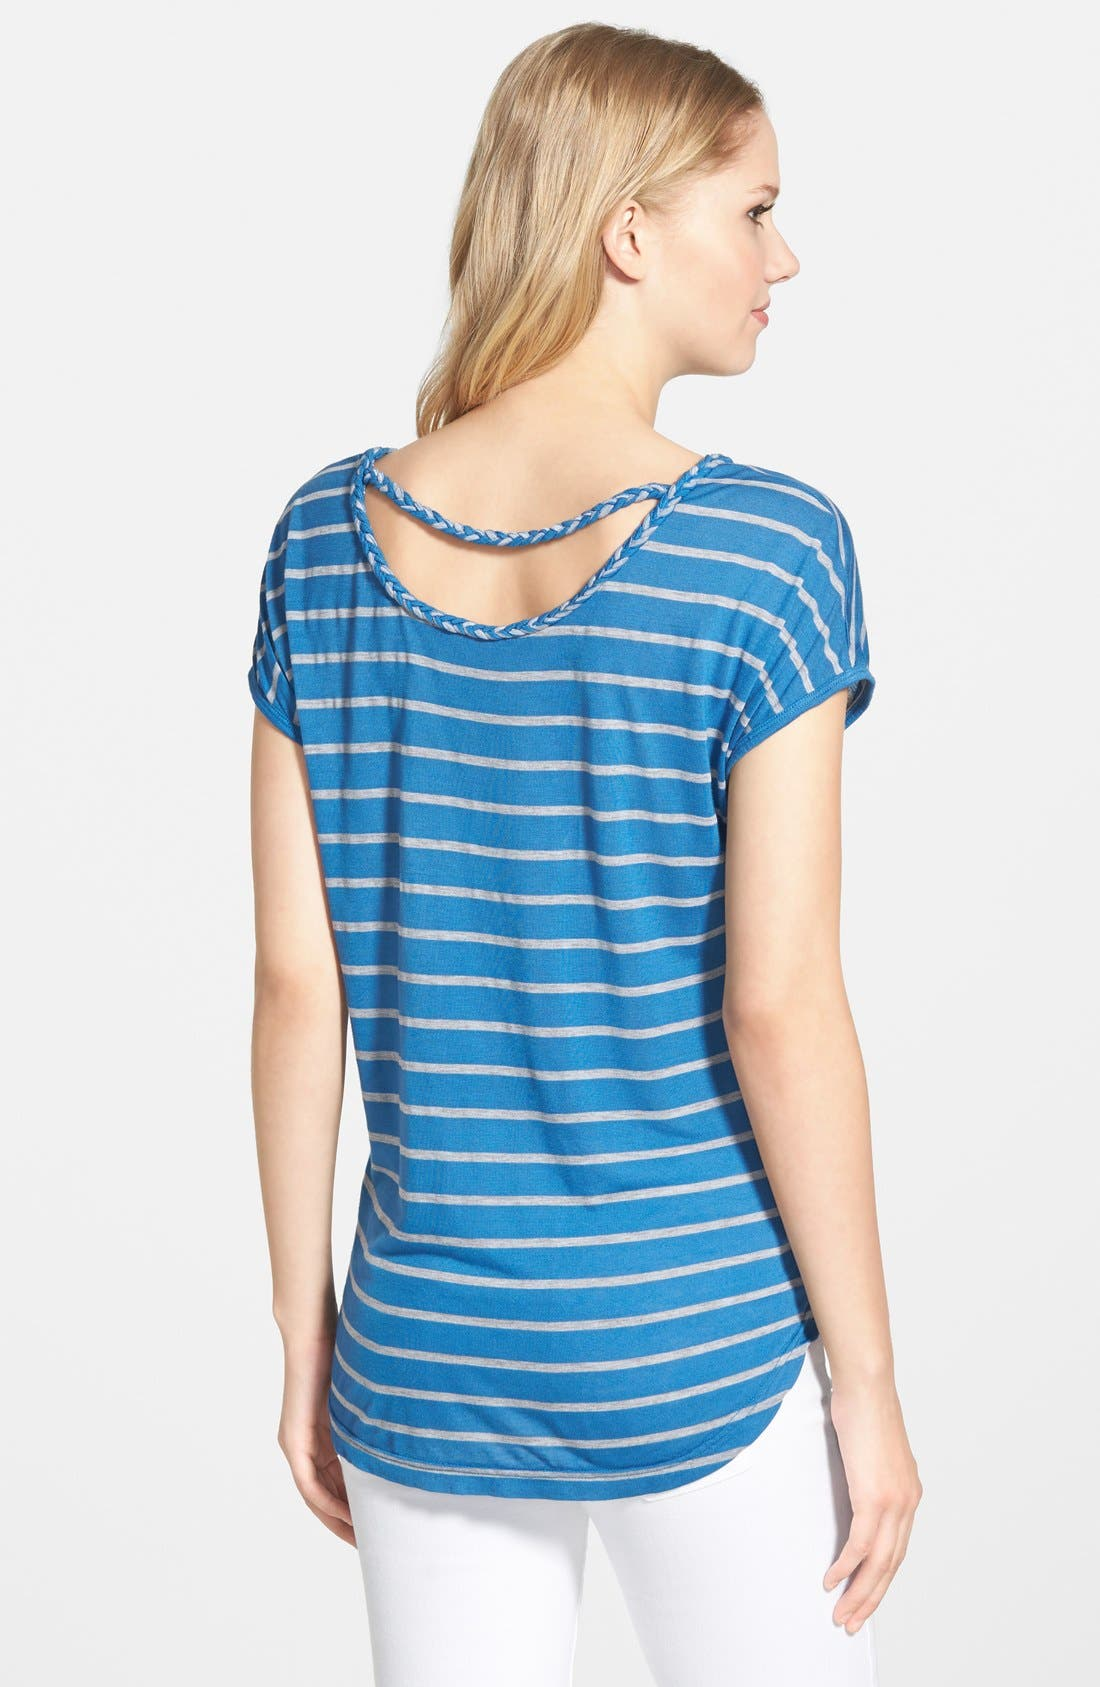 Alternate Image 1 Selected - Two by Vince Camuto Braid Trim Stripe Tee